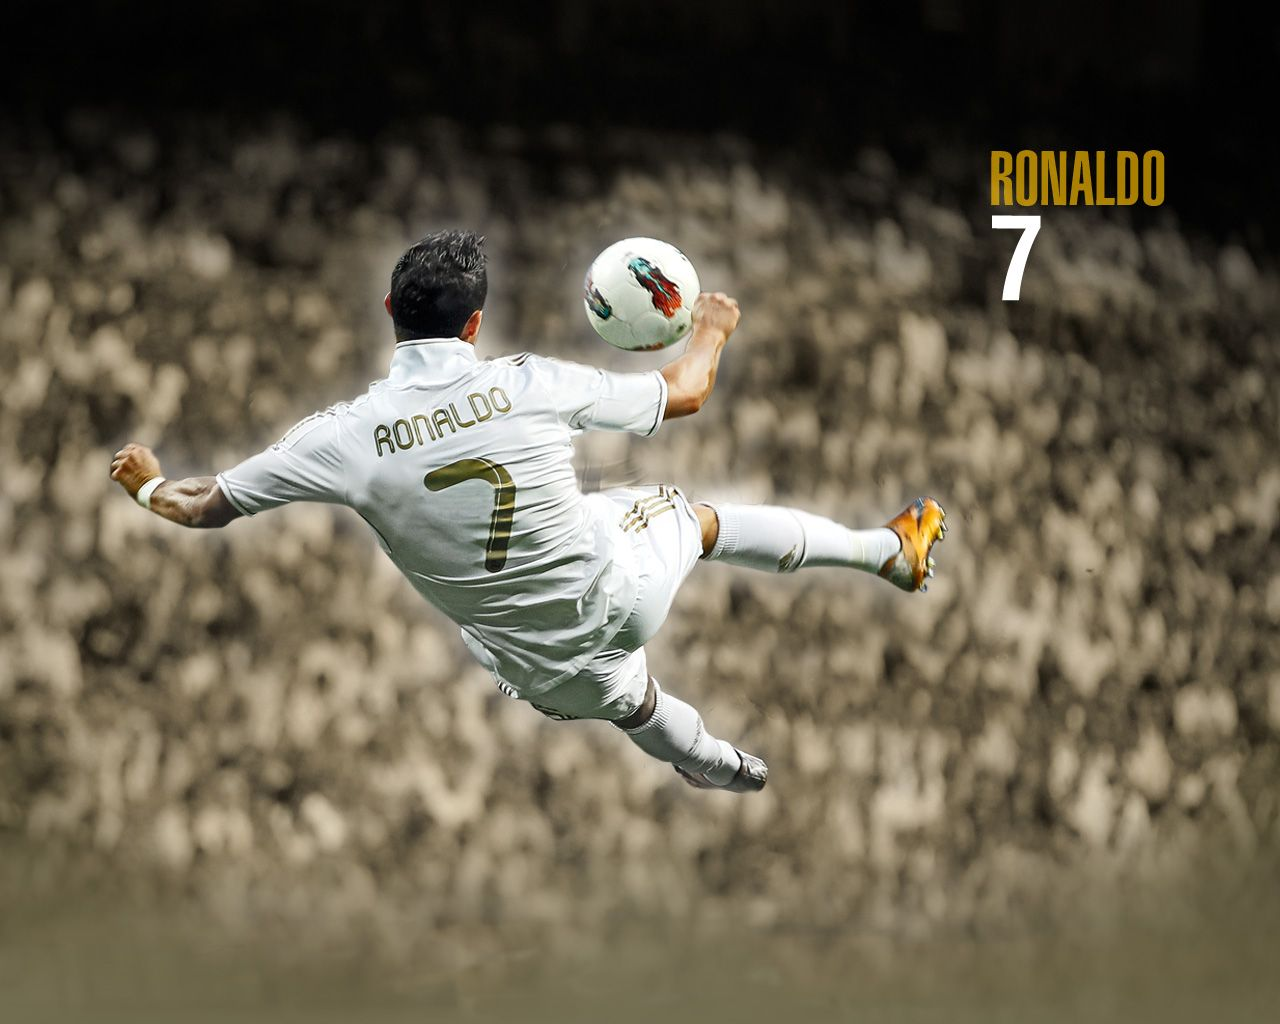 Ronaldo CR7 Real Madrid hd wallpapers Pictures Download